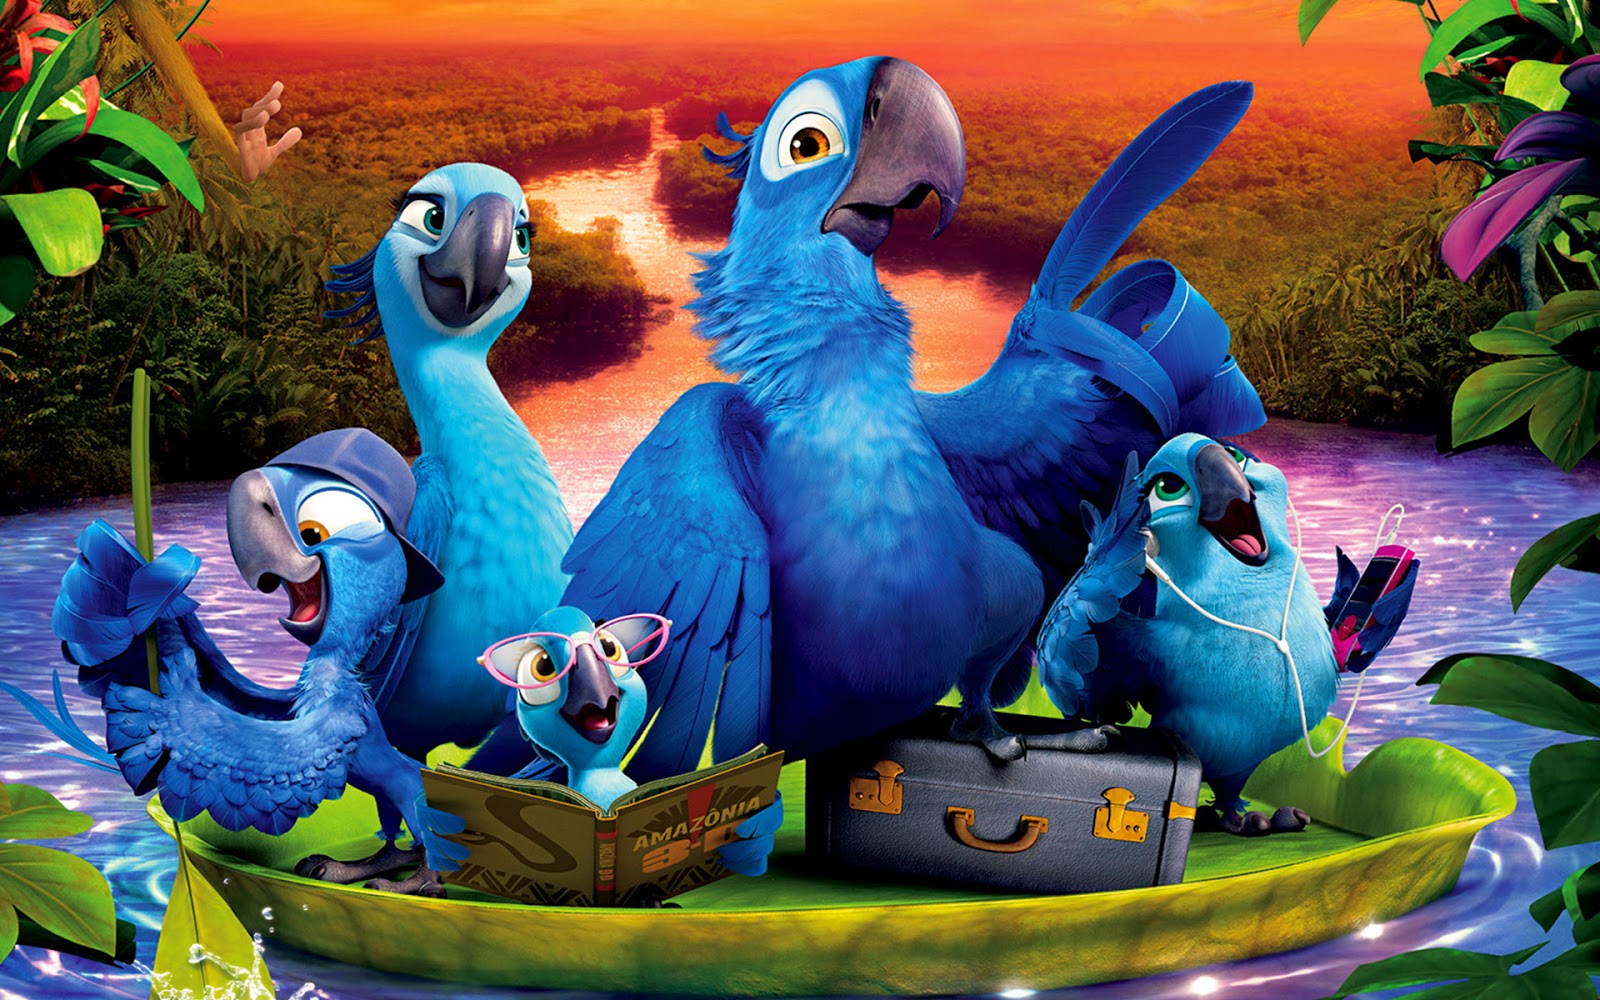 Rio 2 2014 animatedfilmreviews.filminspector.com